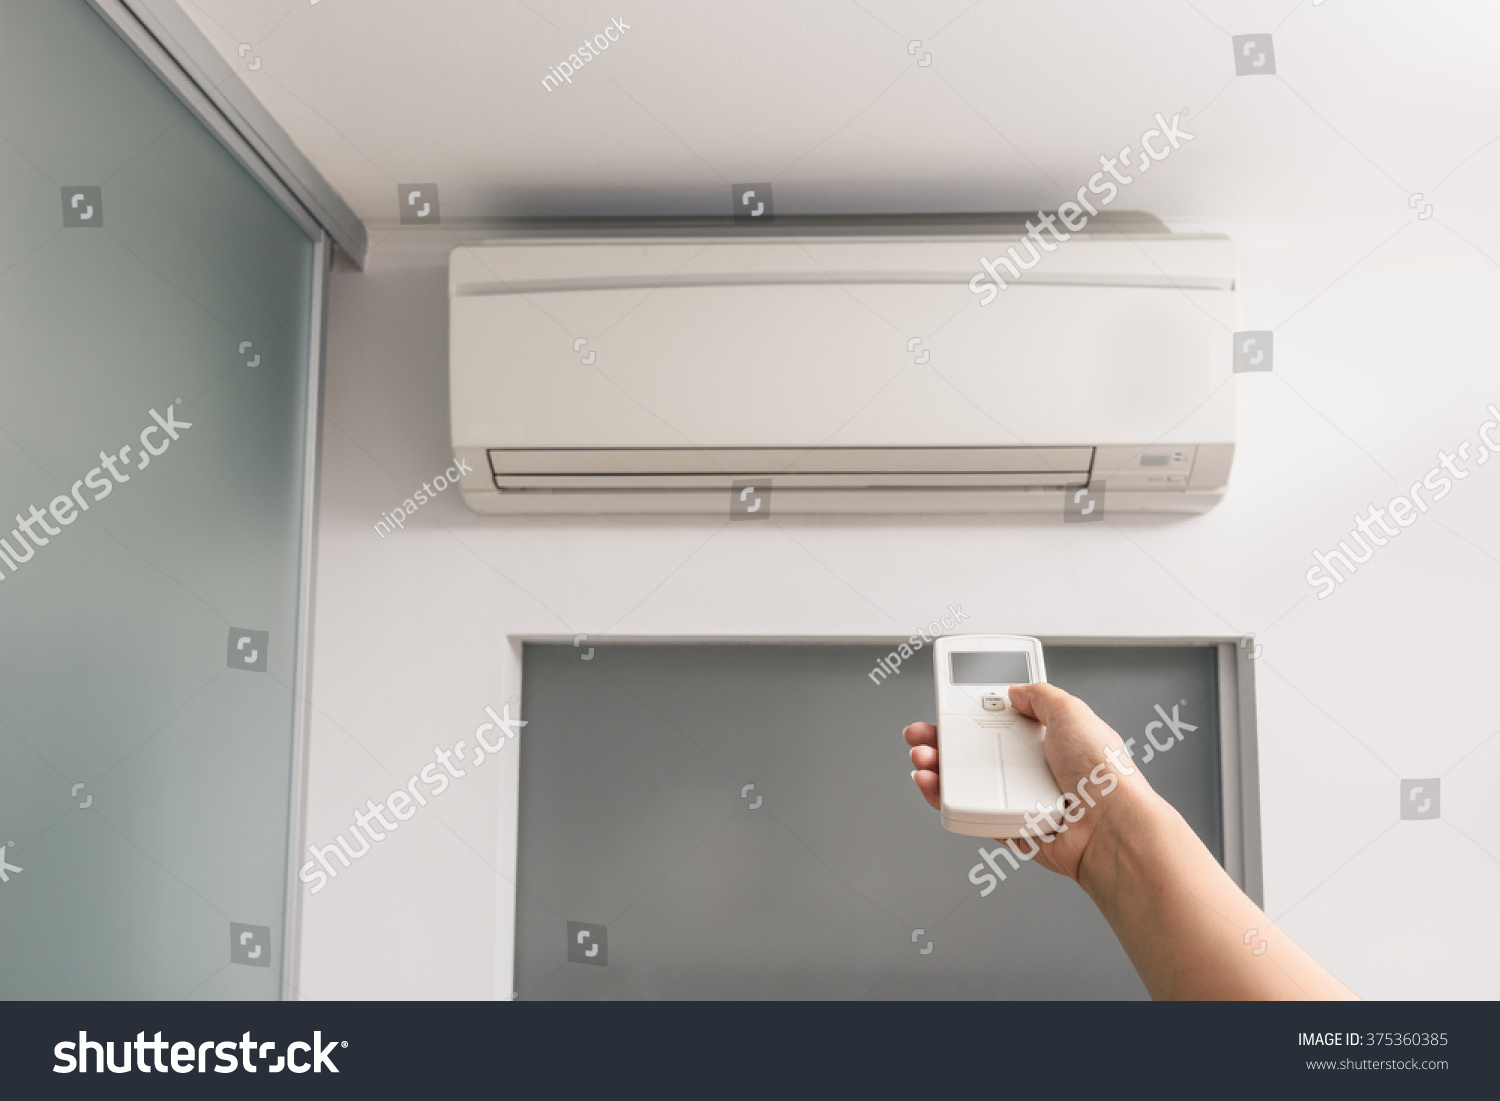 The Air Conditioner In The Room Stock Photo 375360385 : Shutterstock #6D4D3C